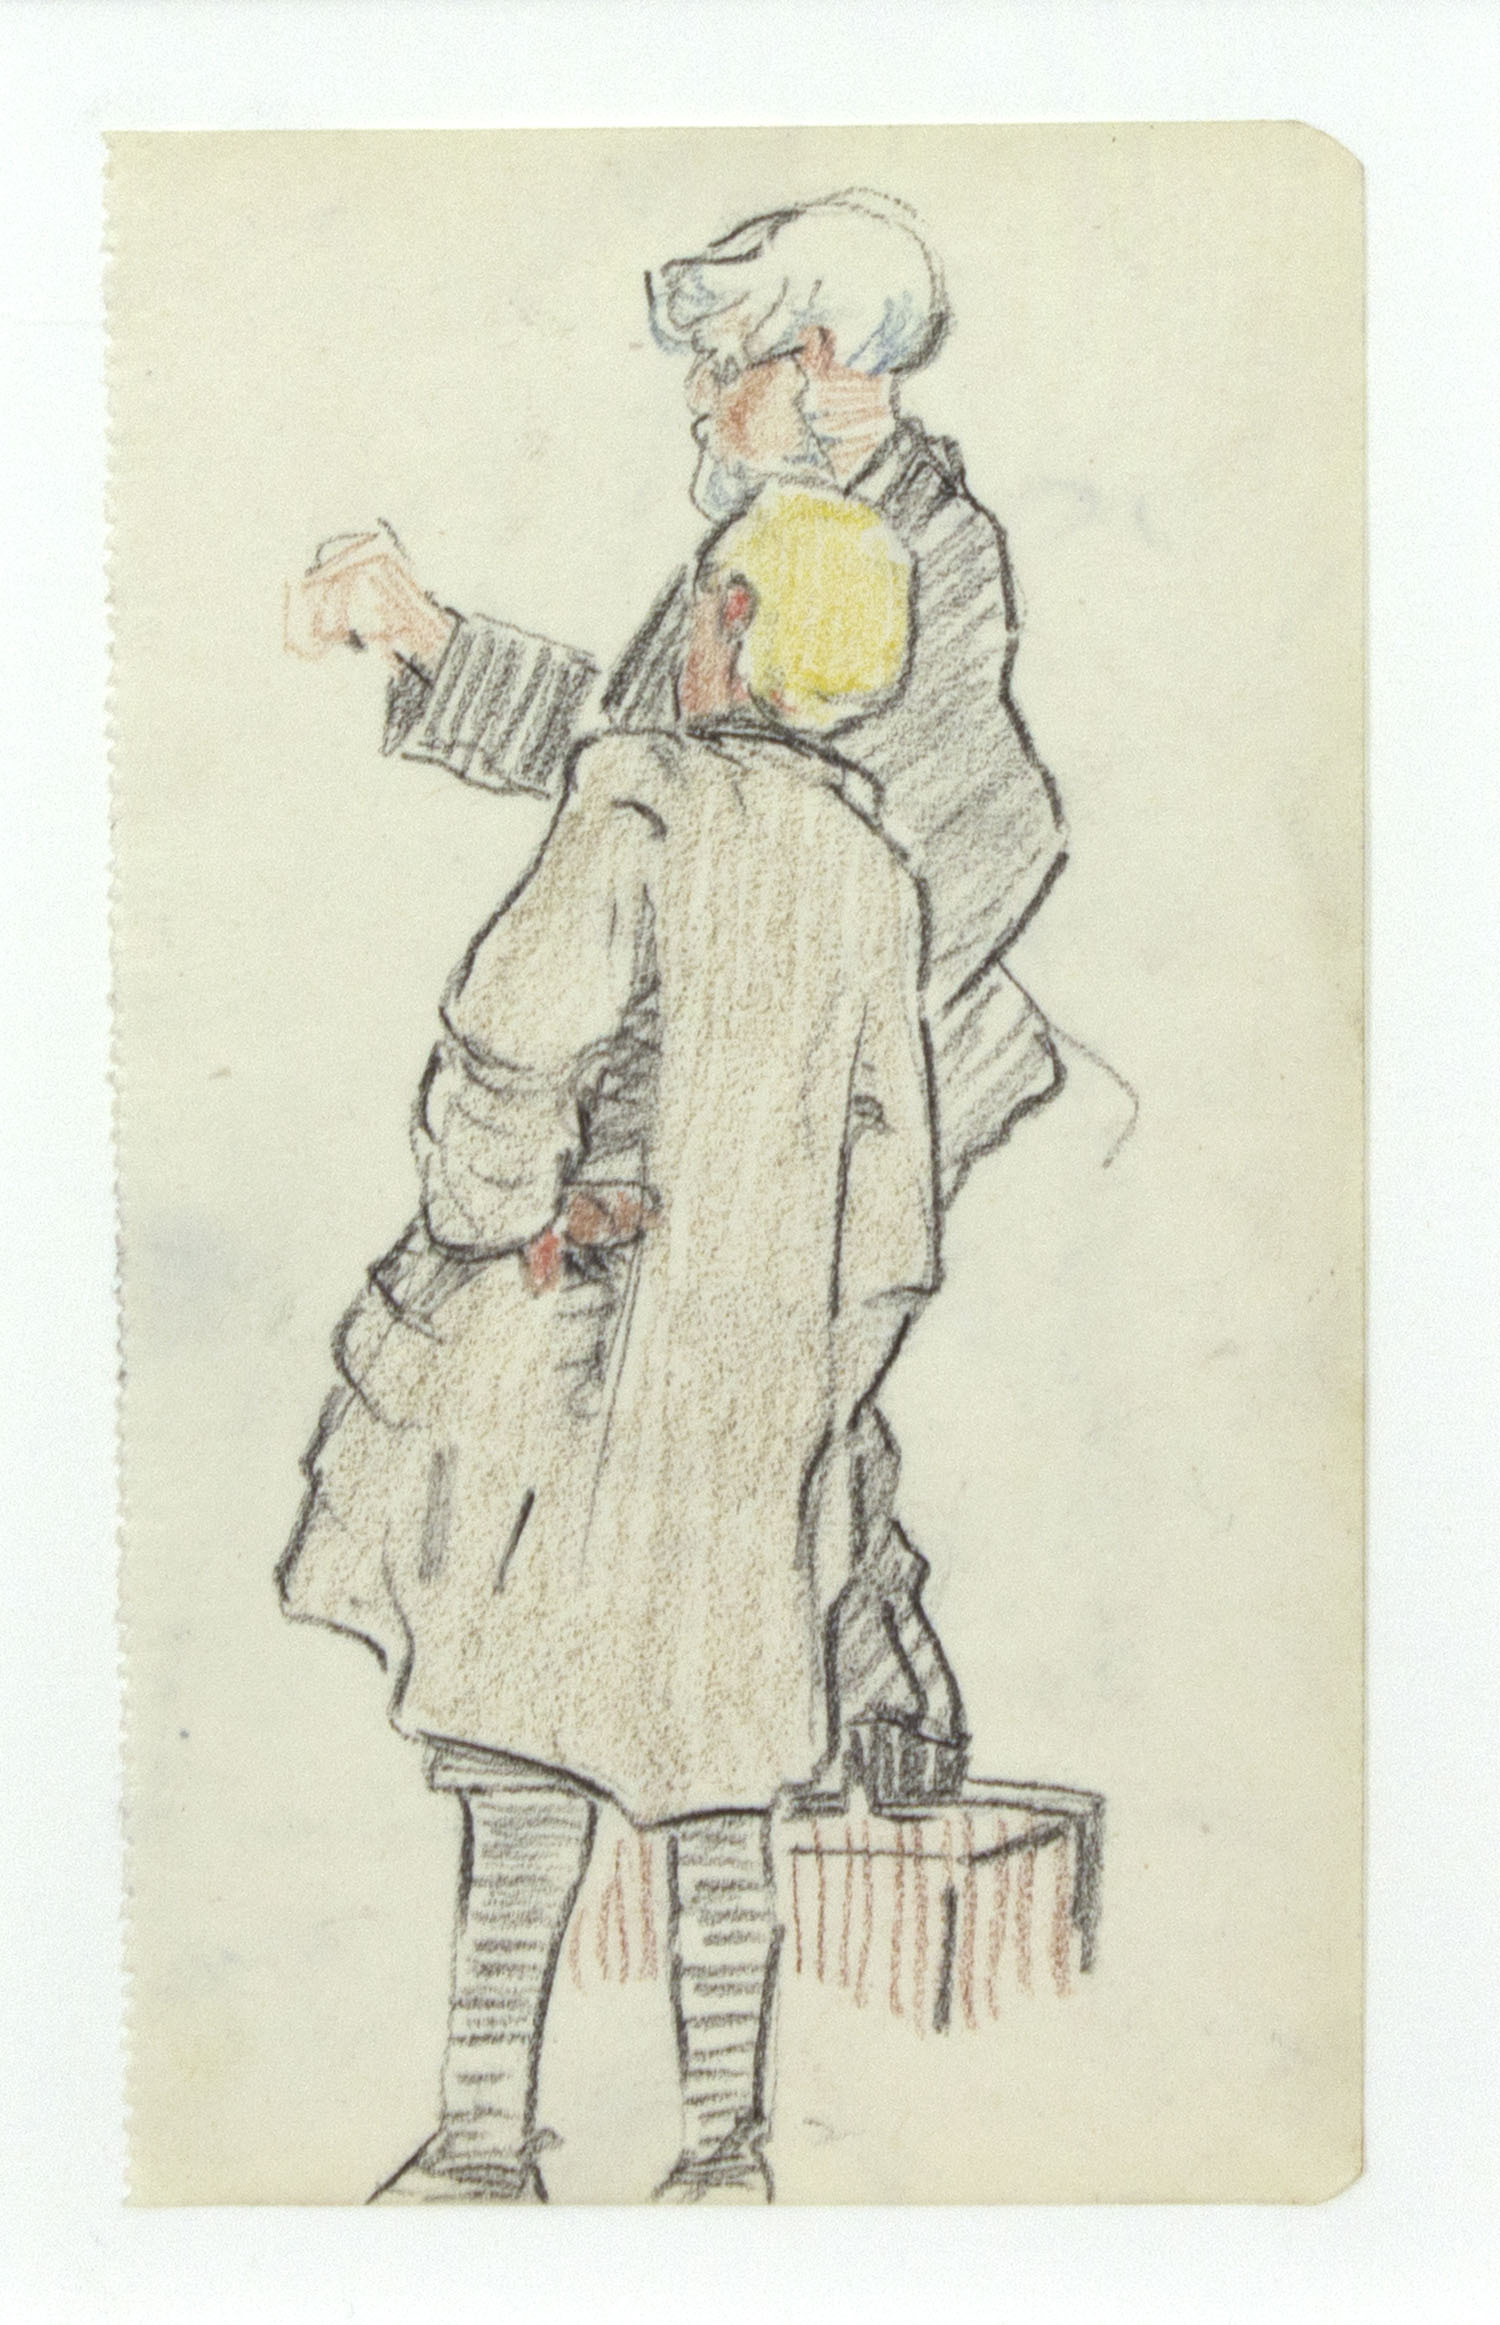 Mary Swanzy 'The Drawing Lesson' c.1905 coloured pencil drawing 14x9cm.jpg